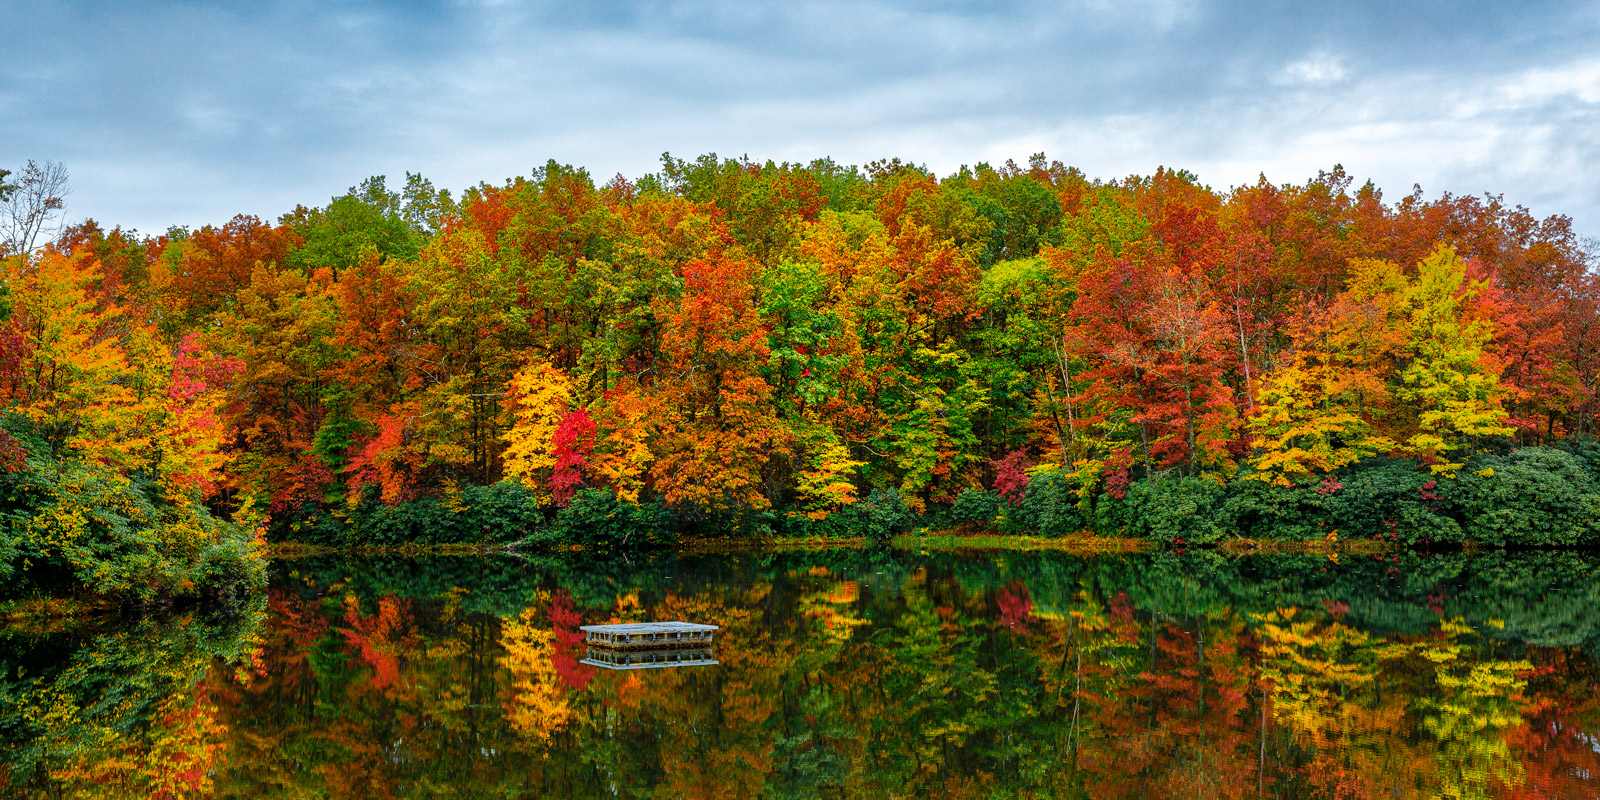 West Virginia, Babcock, Boley, Lake, Fall, Color, limited edition, photograph, fine art, landscape, fall color, photo